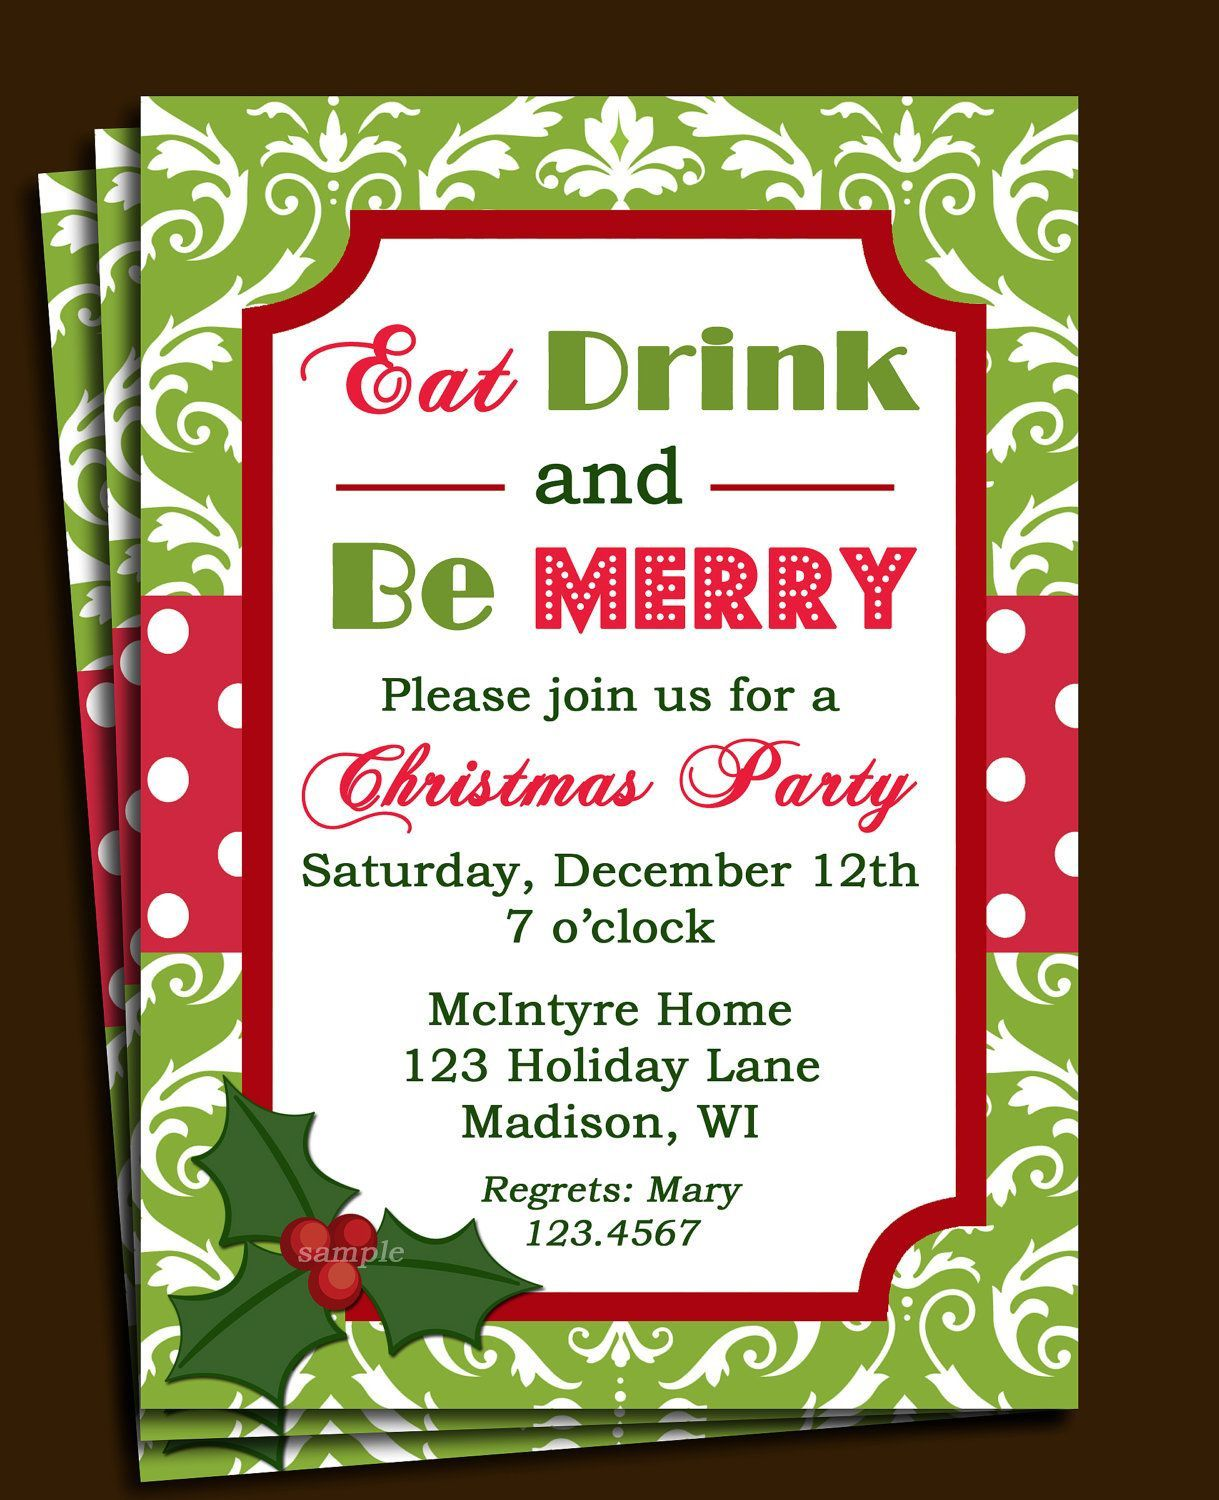 008 Excellent Free Busines Holiday Party Invitation Template Design  Templates Printable OfficeFull